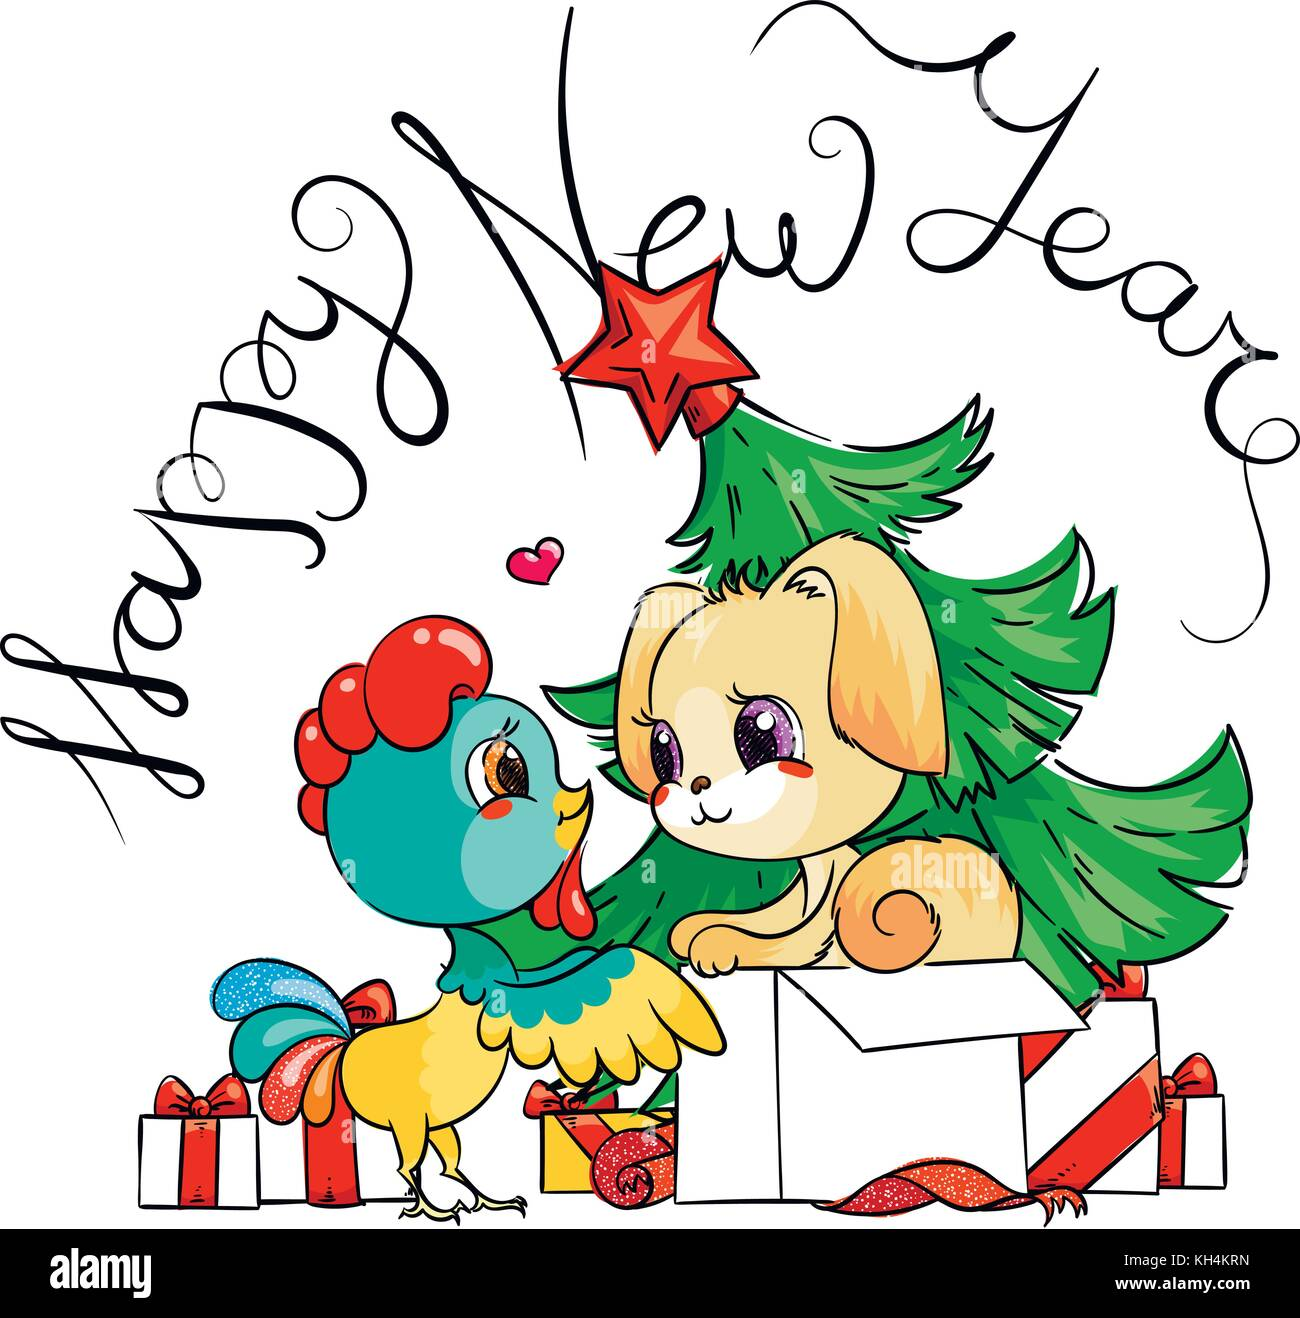 Funny Cartoon Card With Dog And Rooster Symbols Of 2017 And 2018